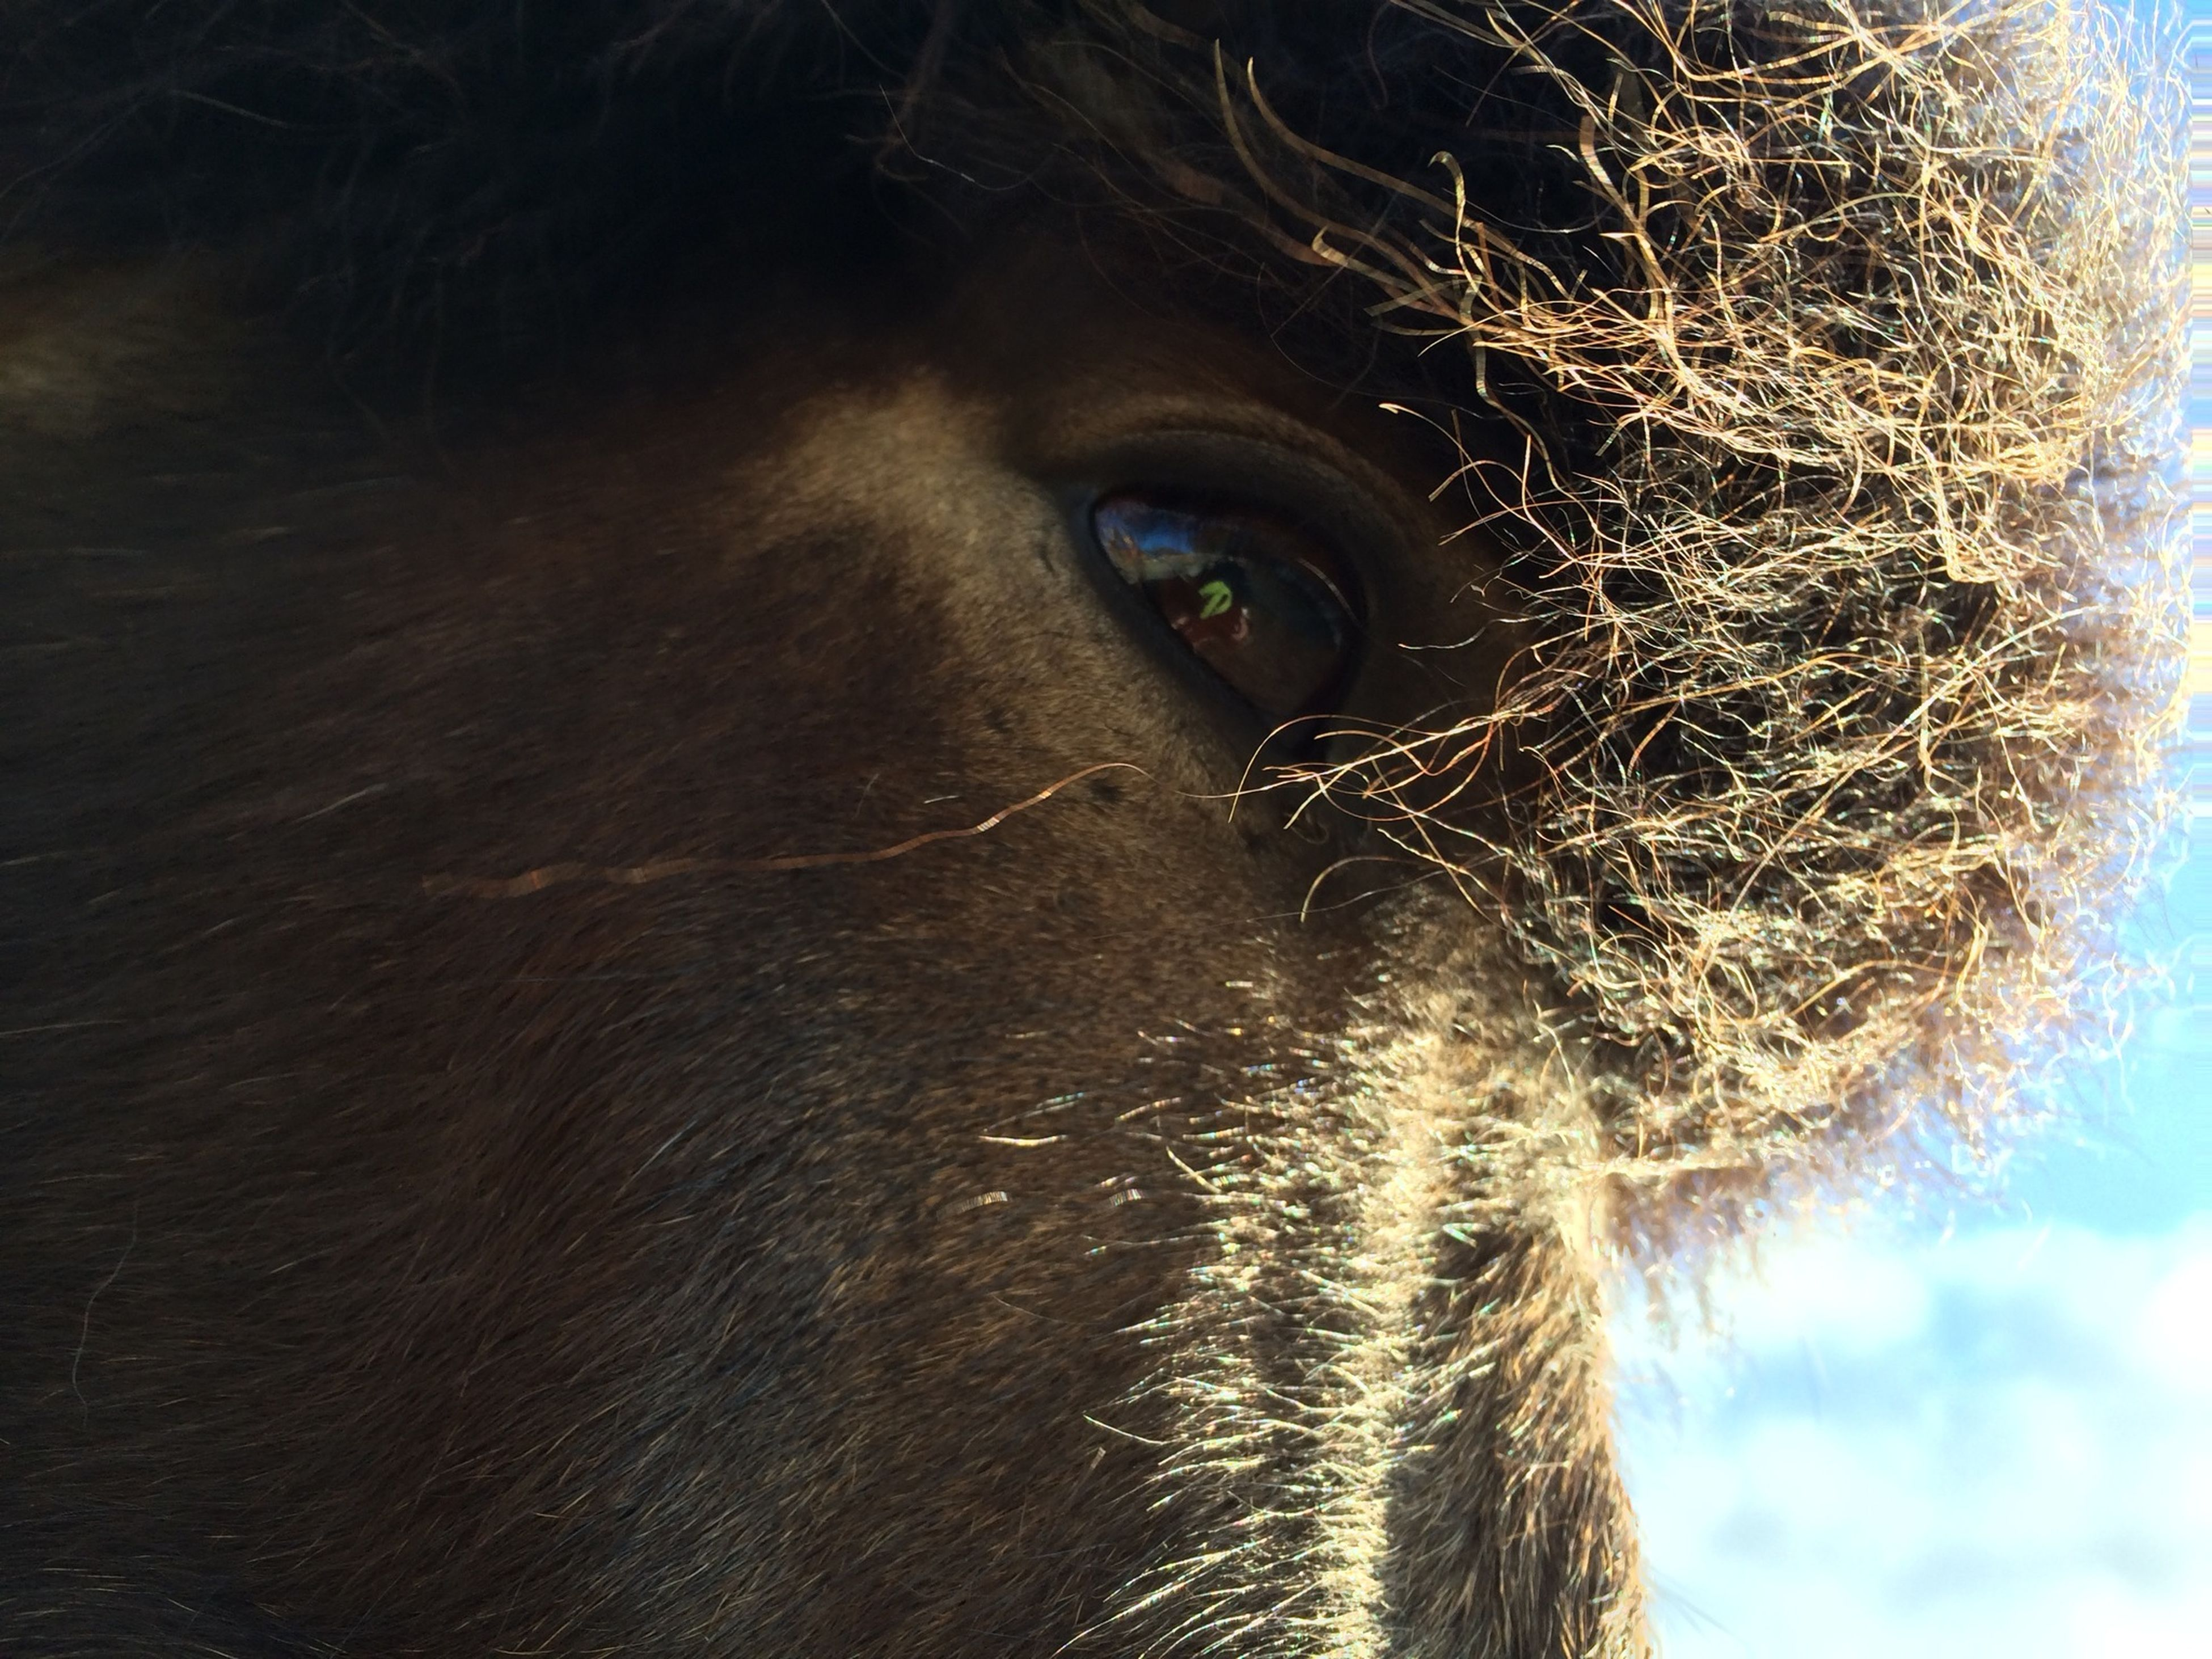 one animal, animal themes, close-up, portrait, animal head, animal body part, looking at camera, part of, front view, one person, animal hair, mammal, domestic animals, focus on foreground, animal eye, outdoors, day, nature, headshot